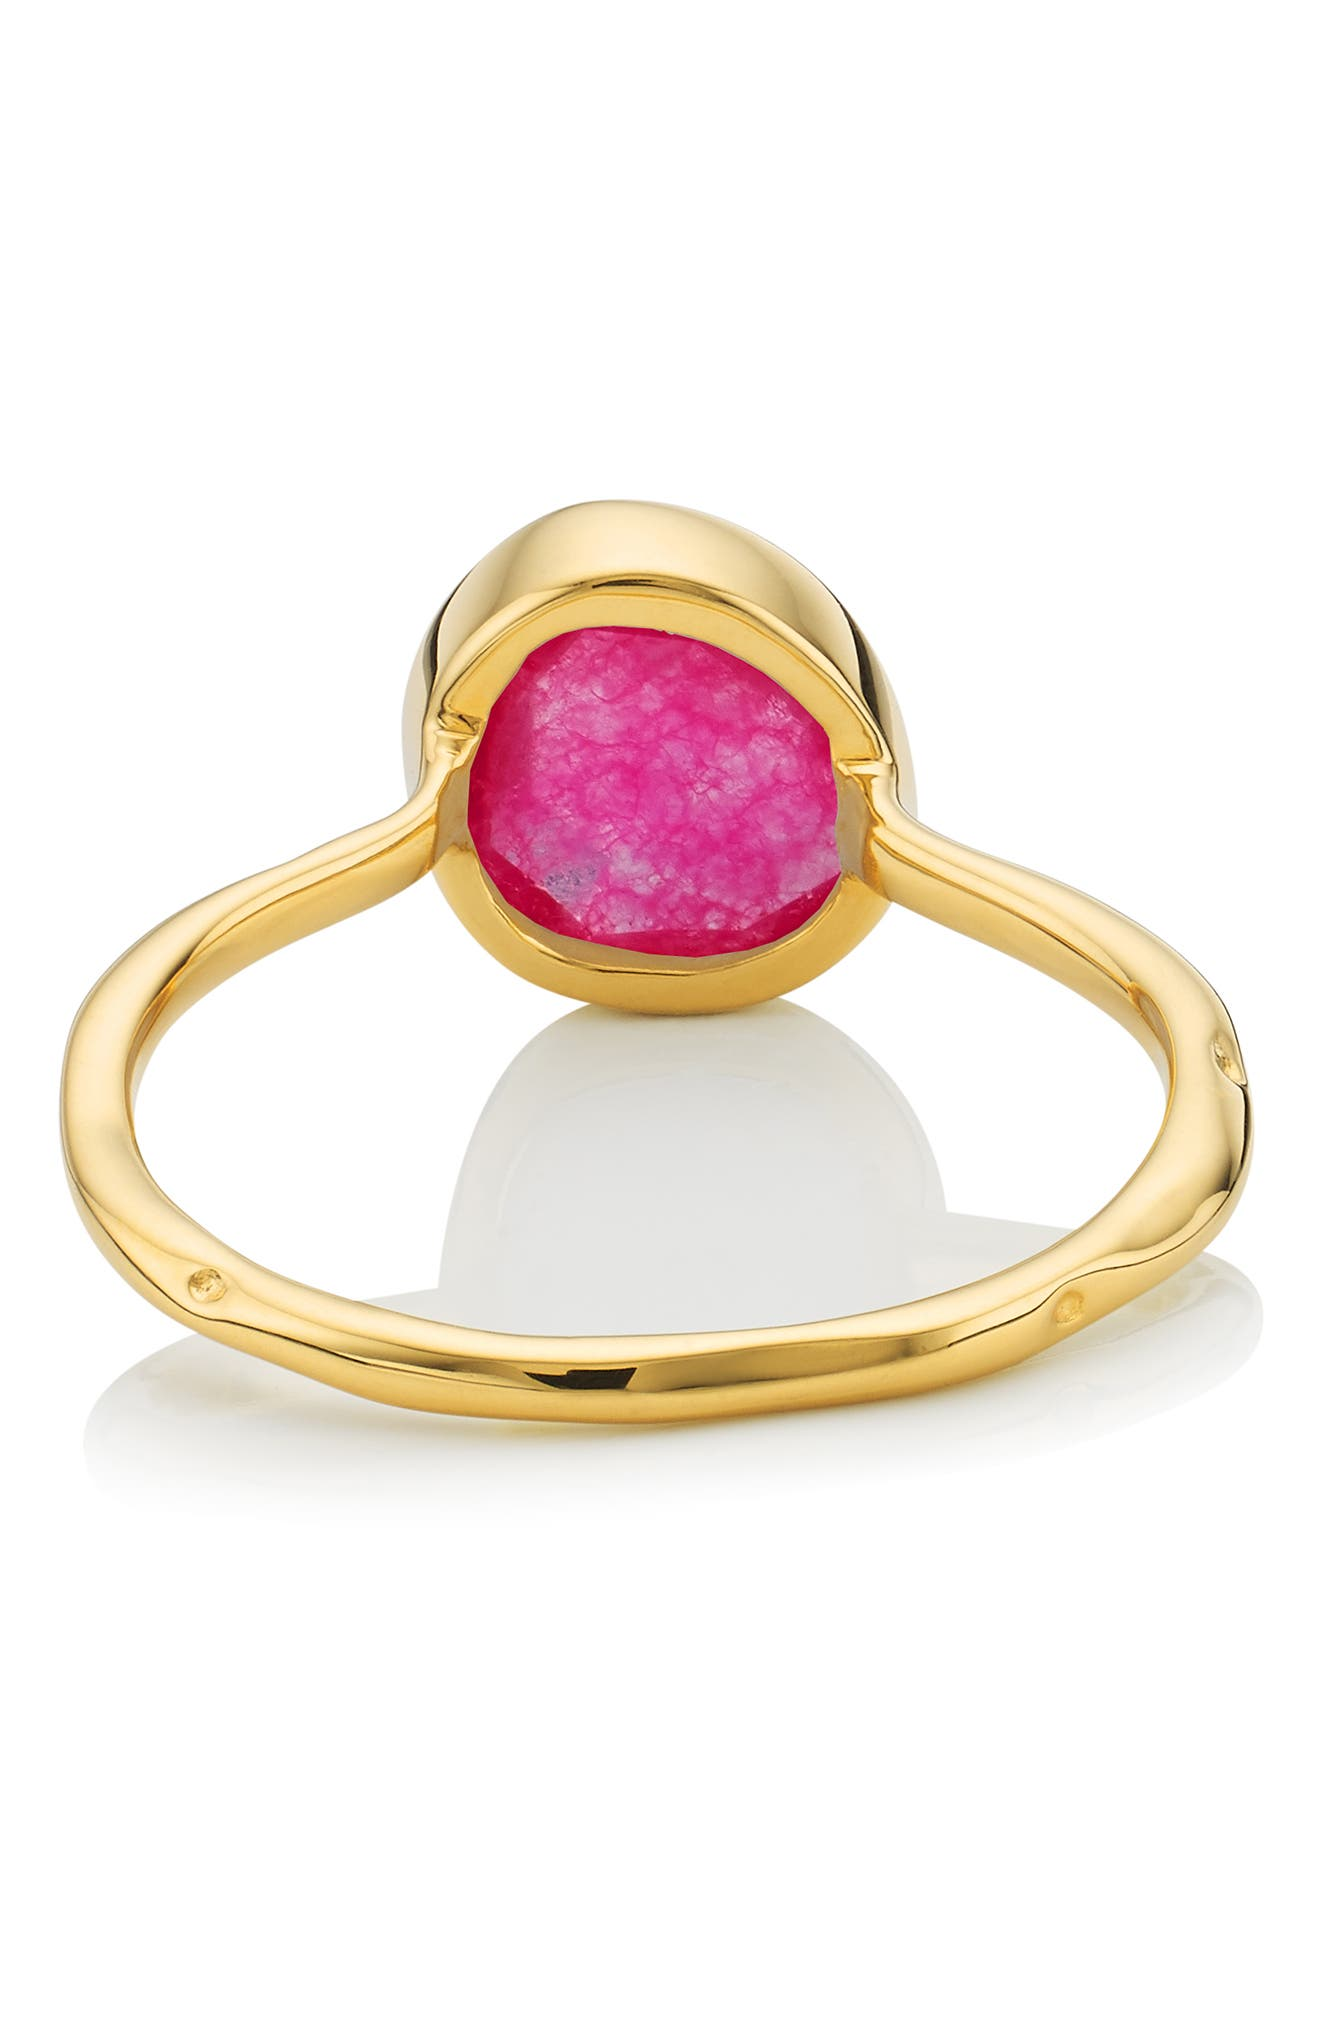 Siren Semiprecious Stone Stacking Ring,                             Alternate thumbnail 3, color,                             GOLD/ PINK QUARTZ